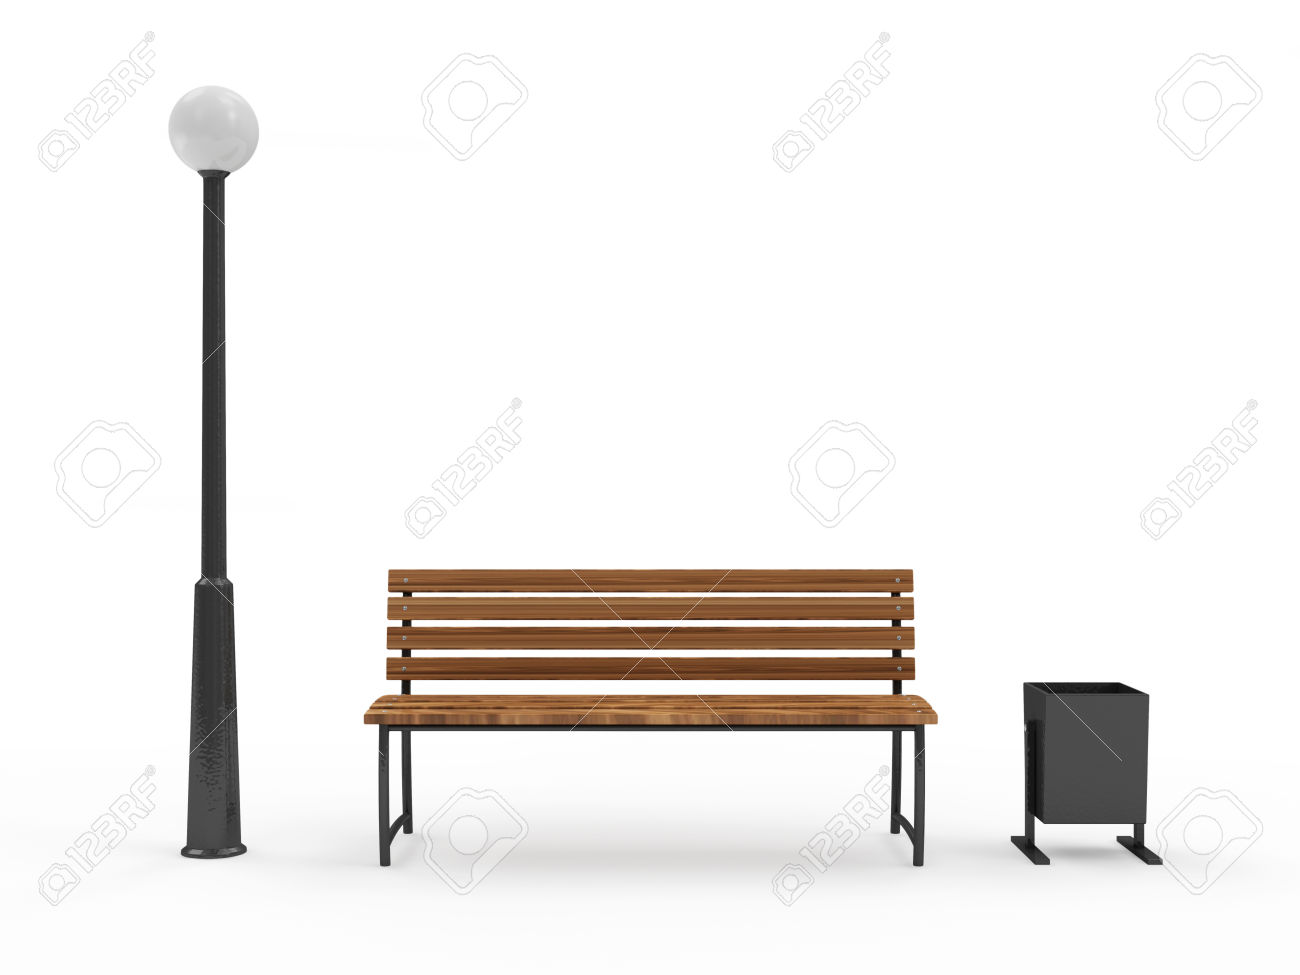 Clipart Silhouette Of Person On A Bench Near Street Lamp